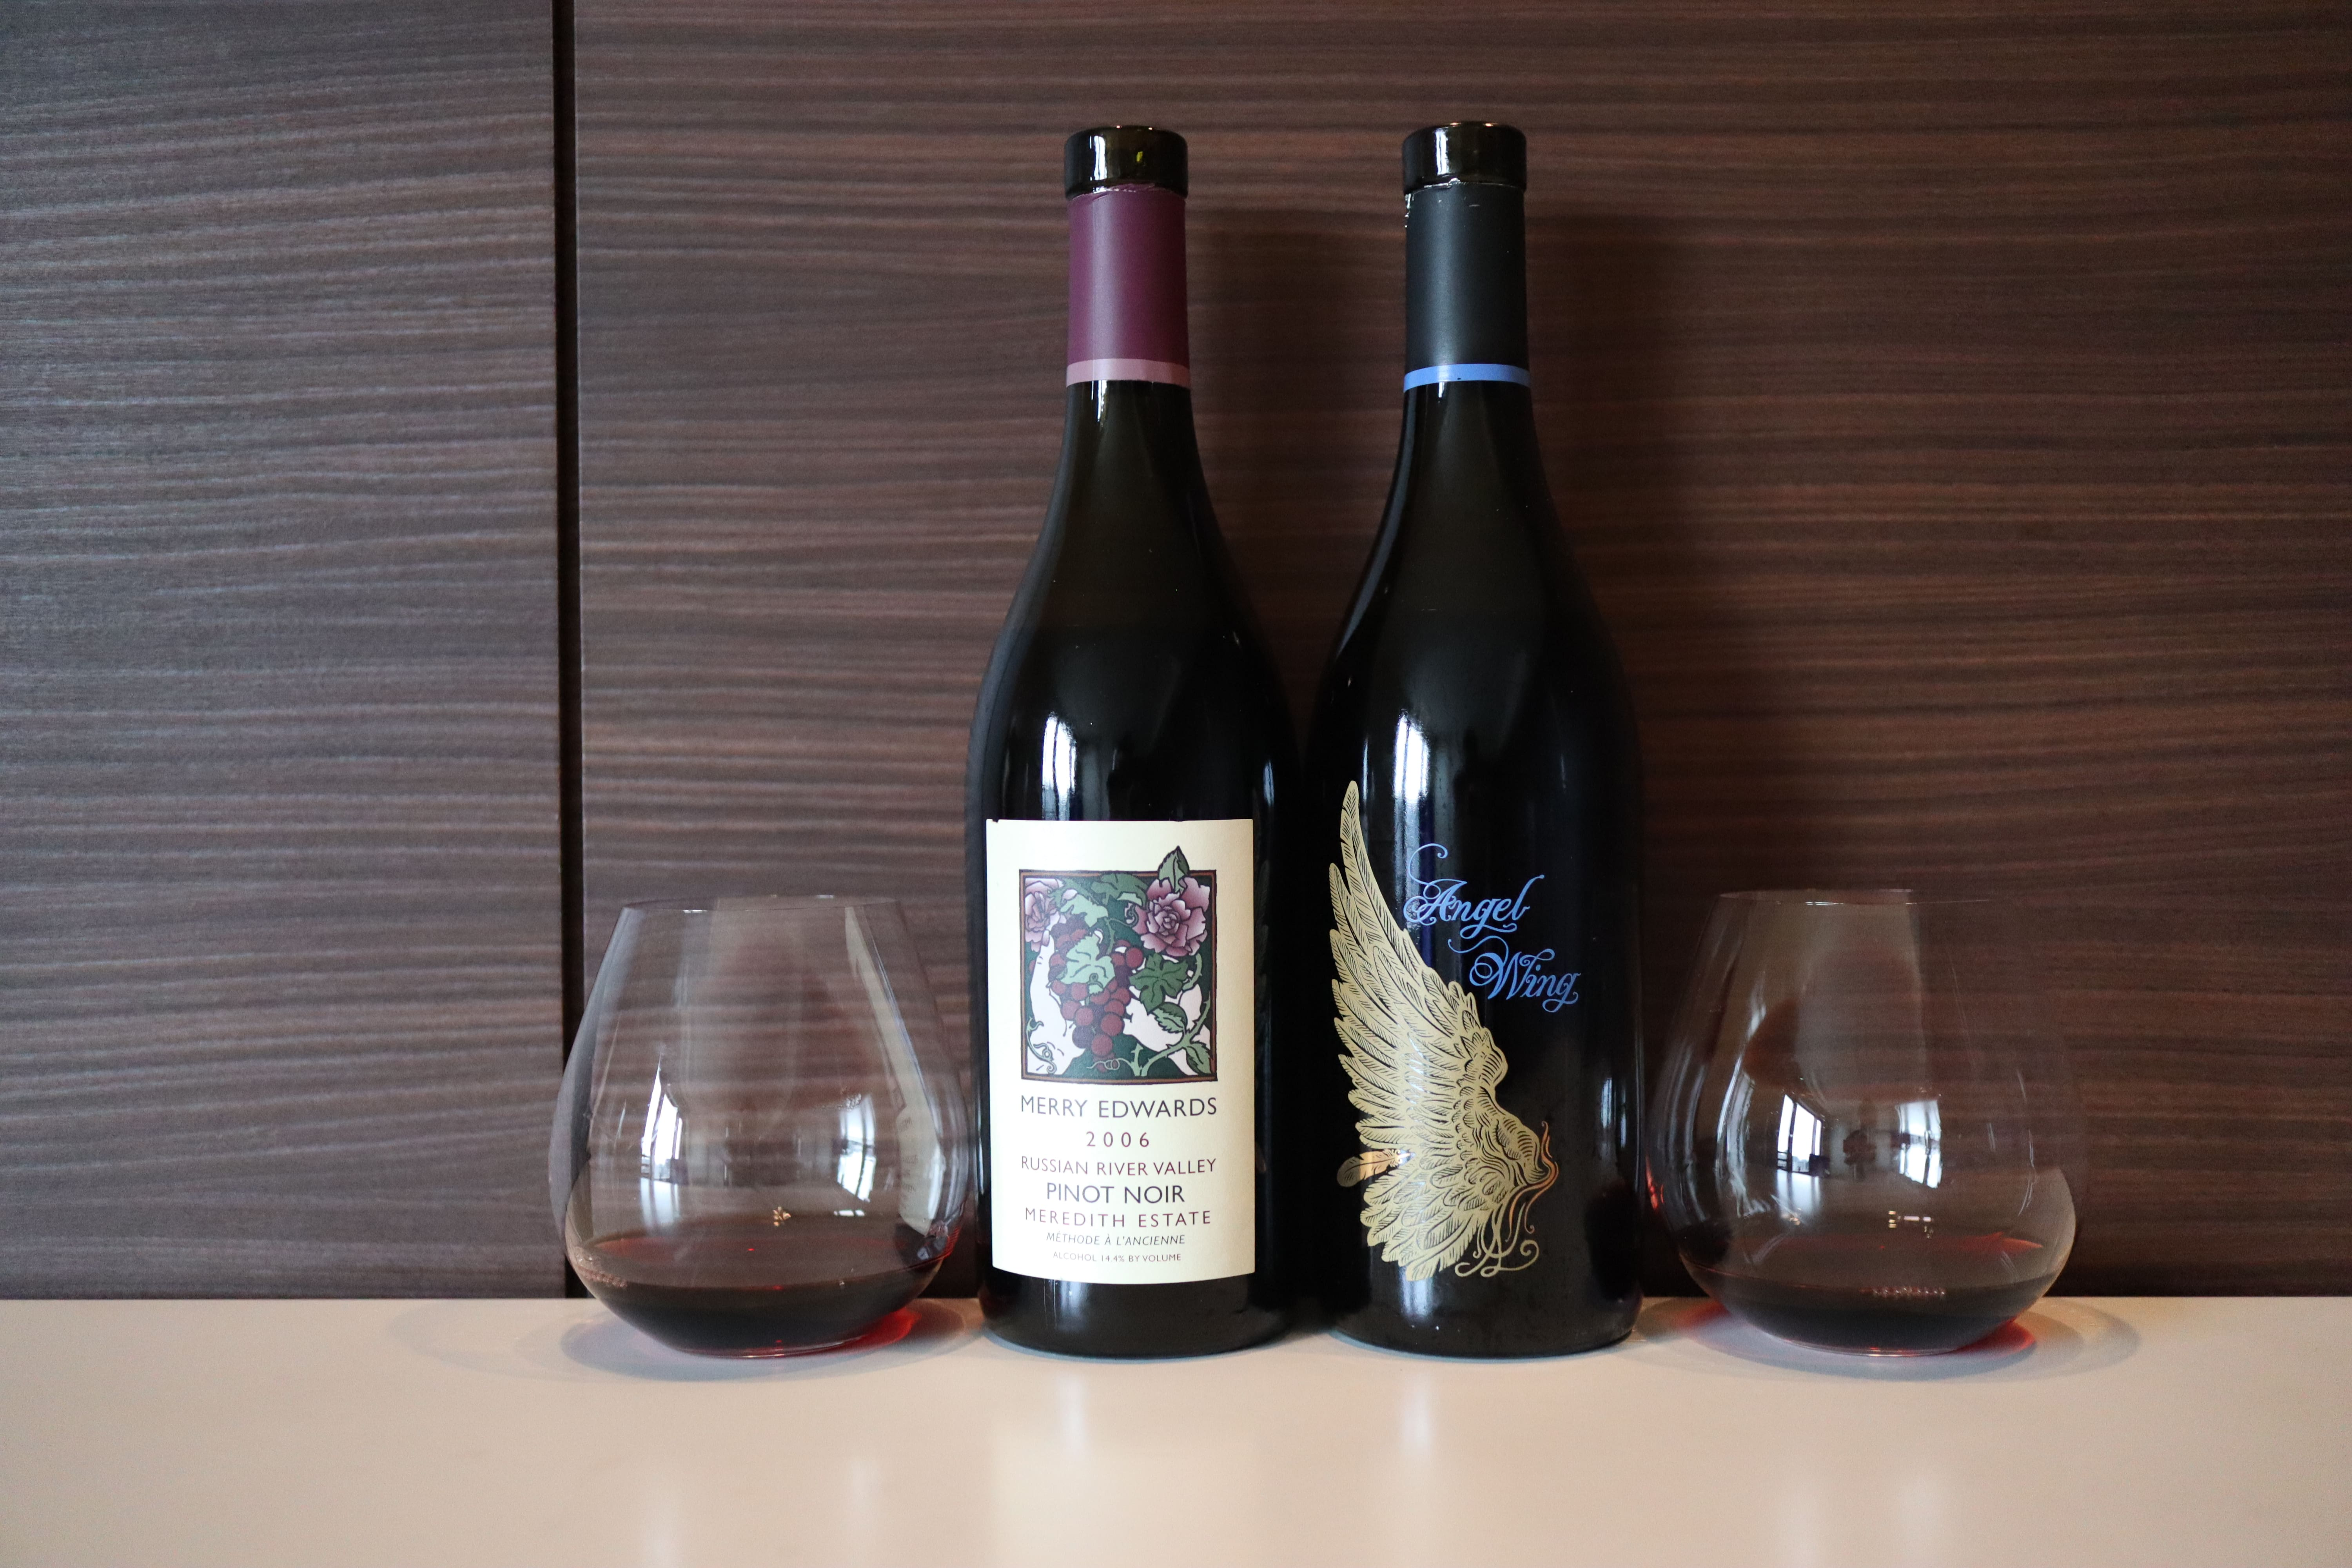 Merry Edwards Pinot Noir Meredith Estate 2006 vs Angel Wing 2006